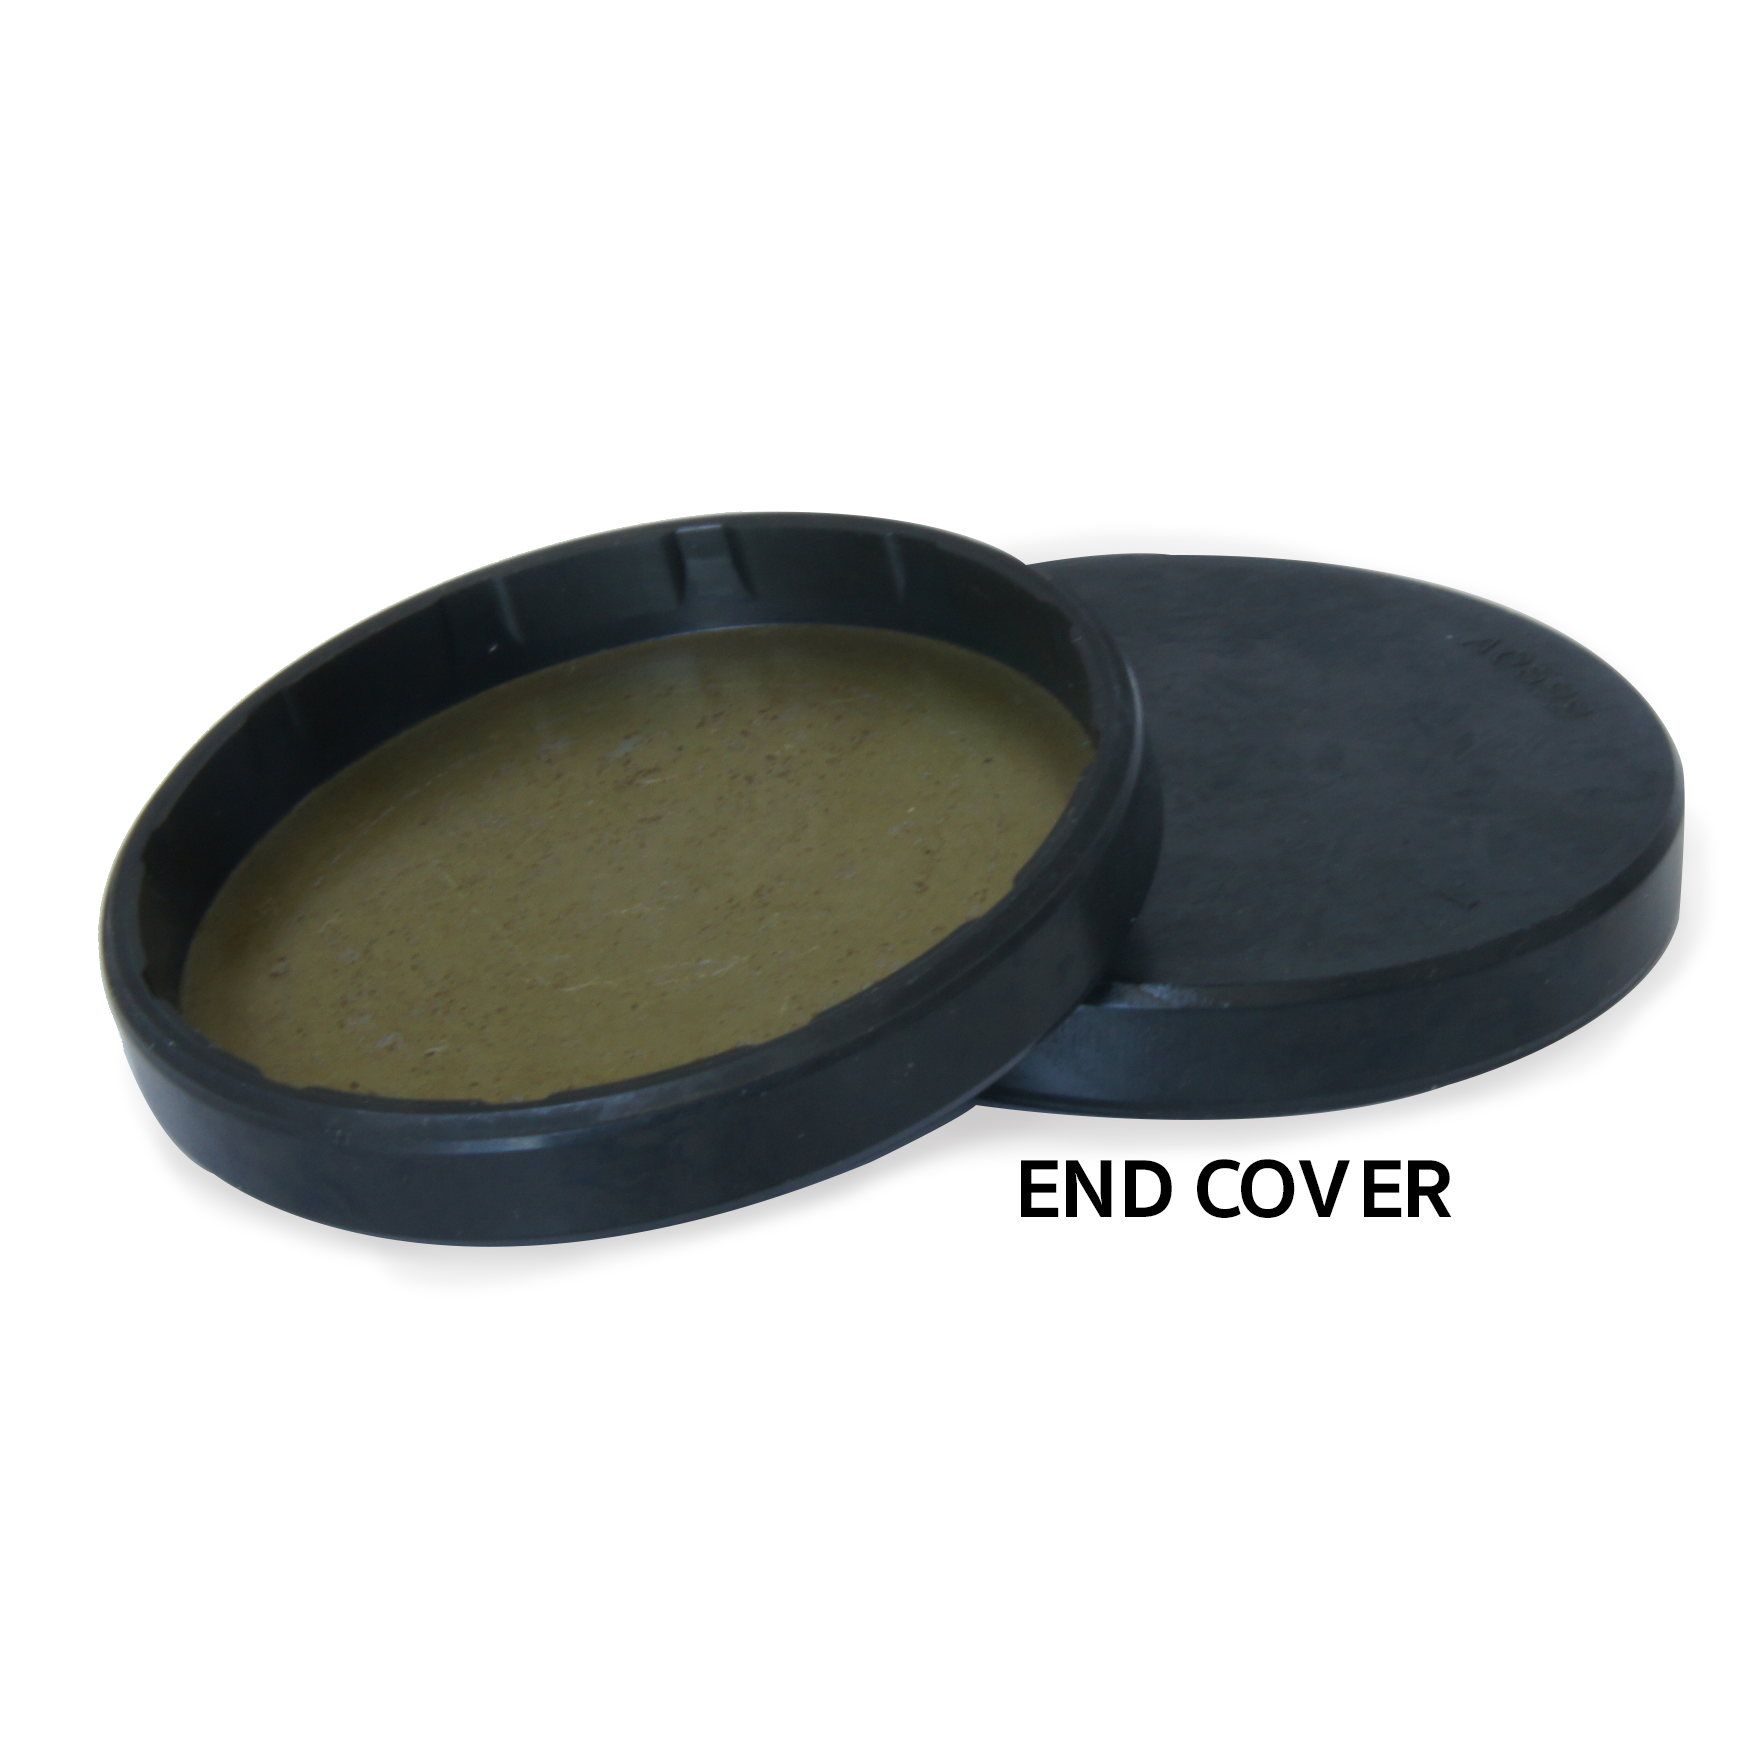 END COVER